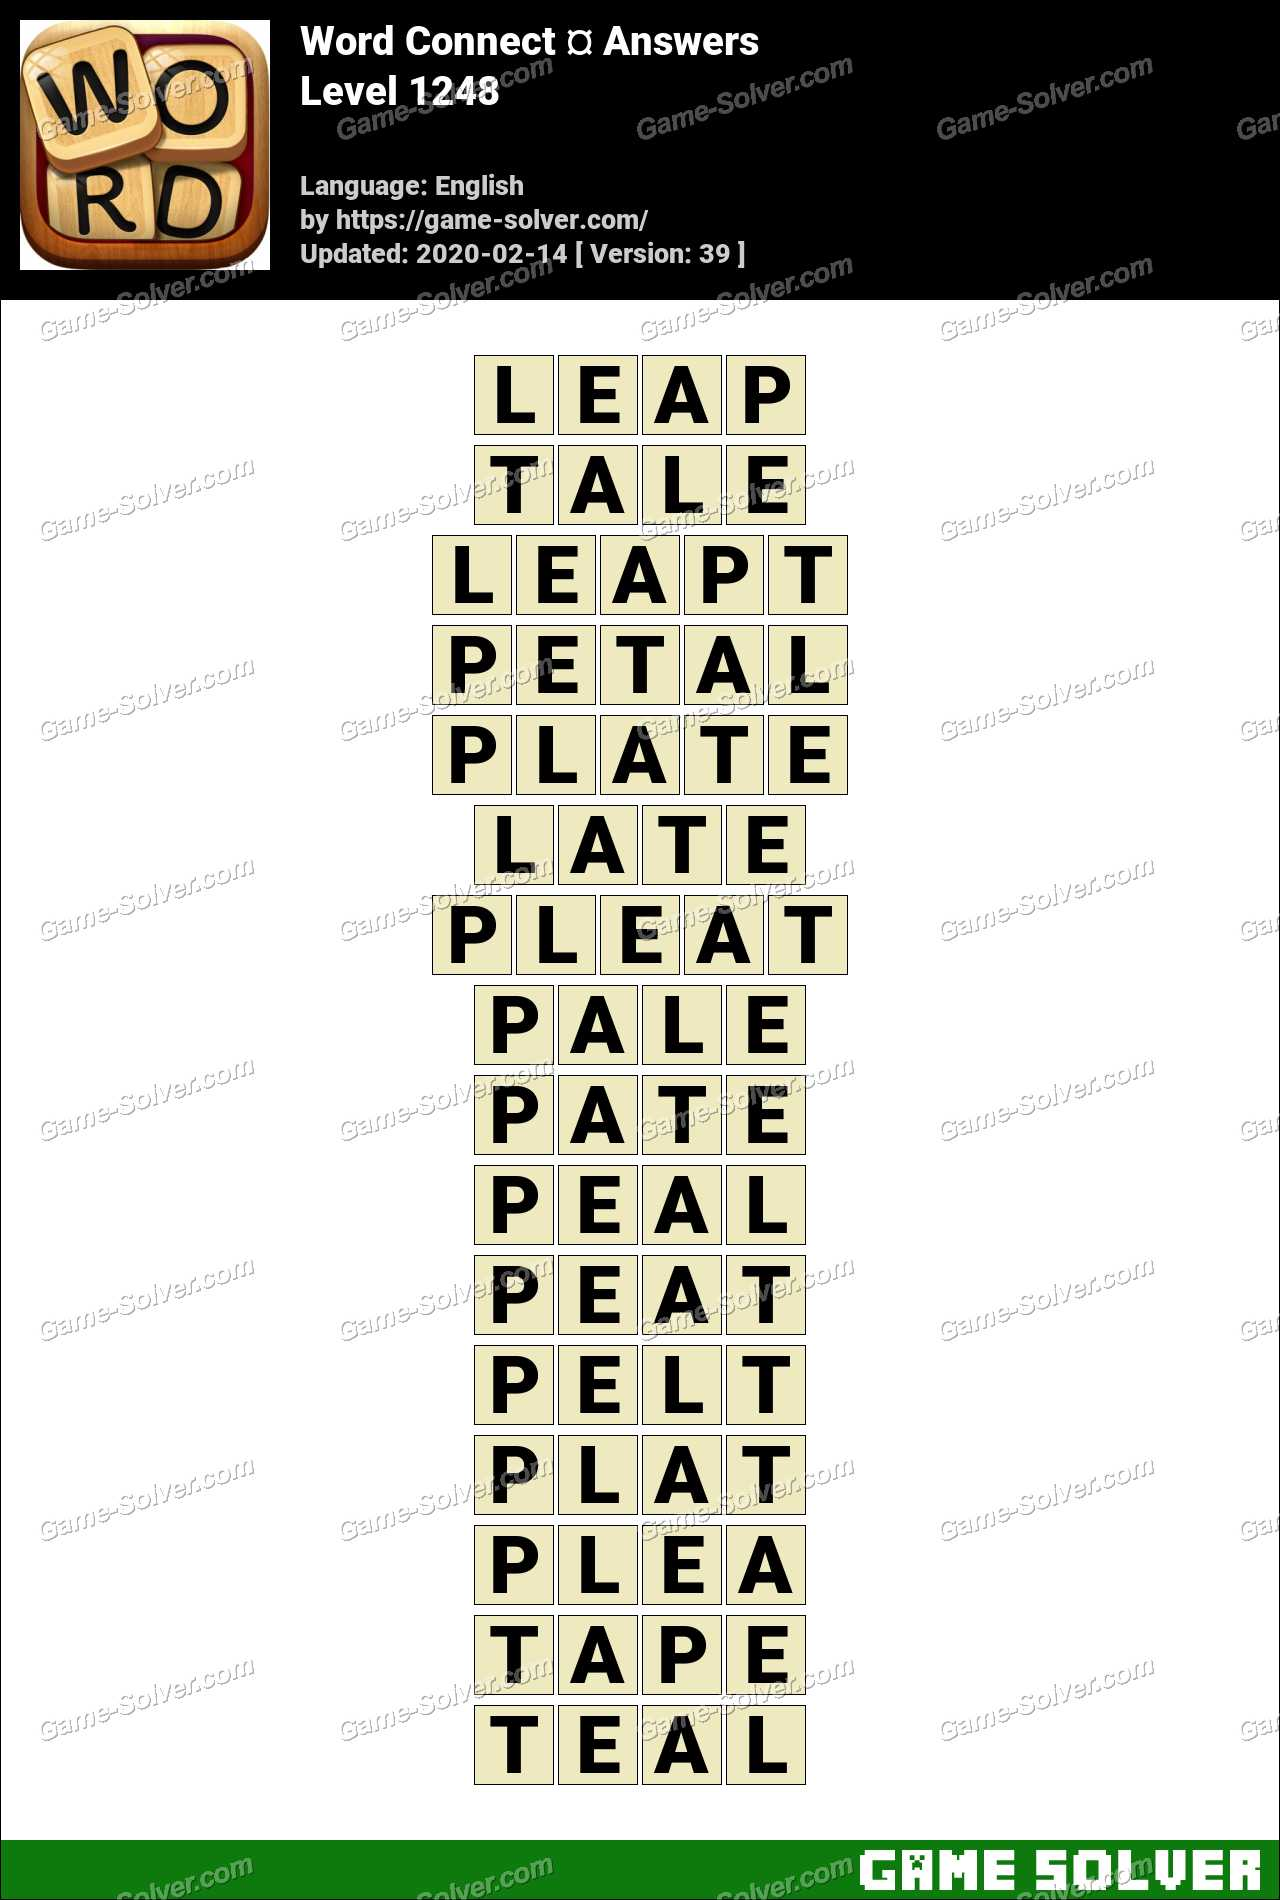 Word Connect Level 1248 Answers